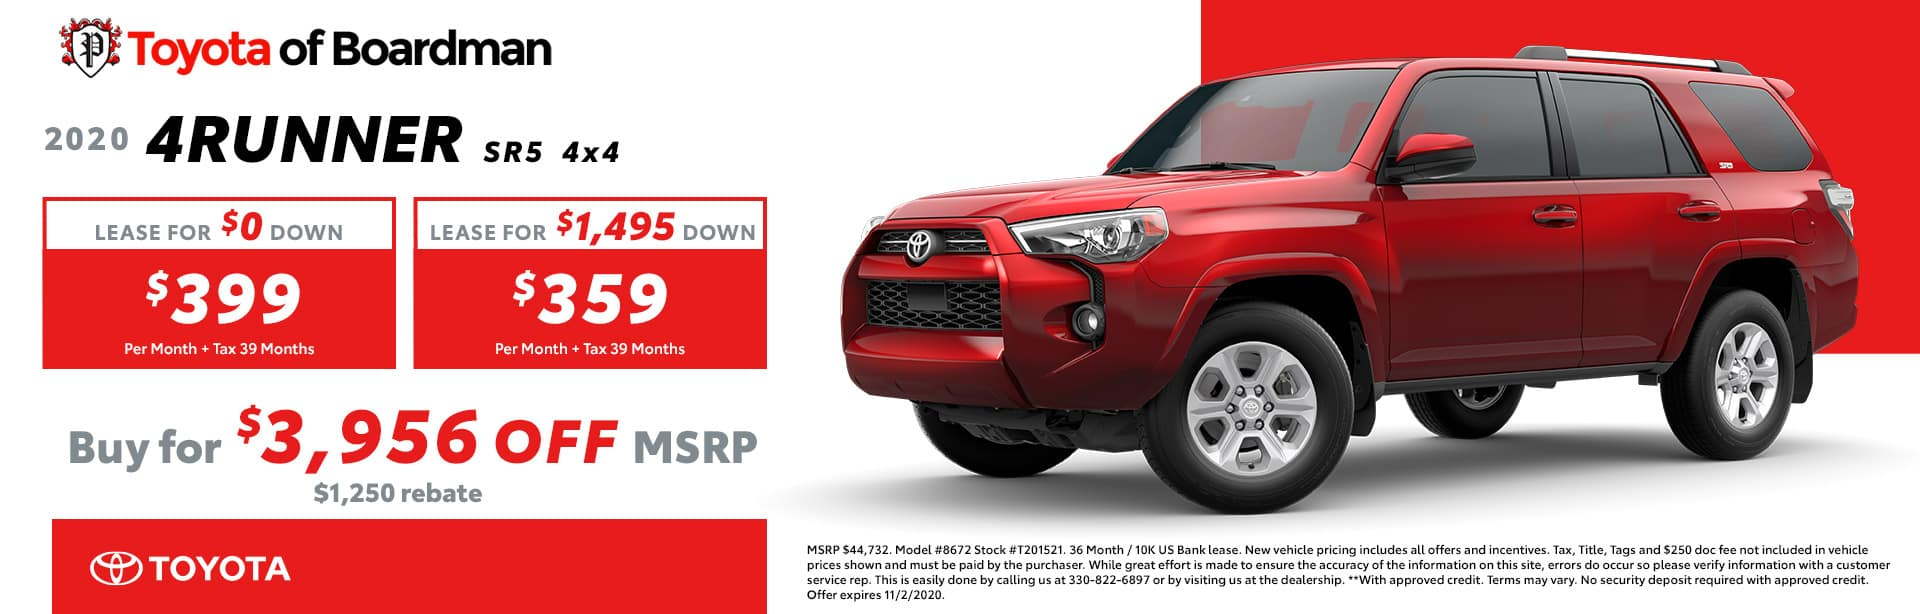 4Runner_TRD_1920x614oct2